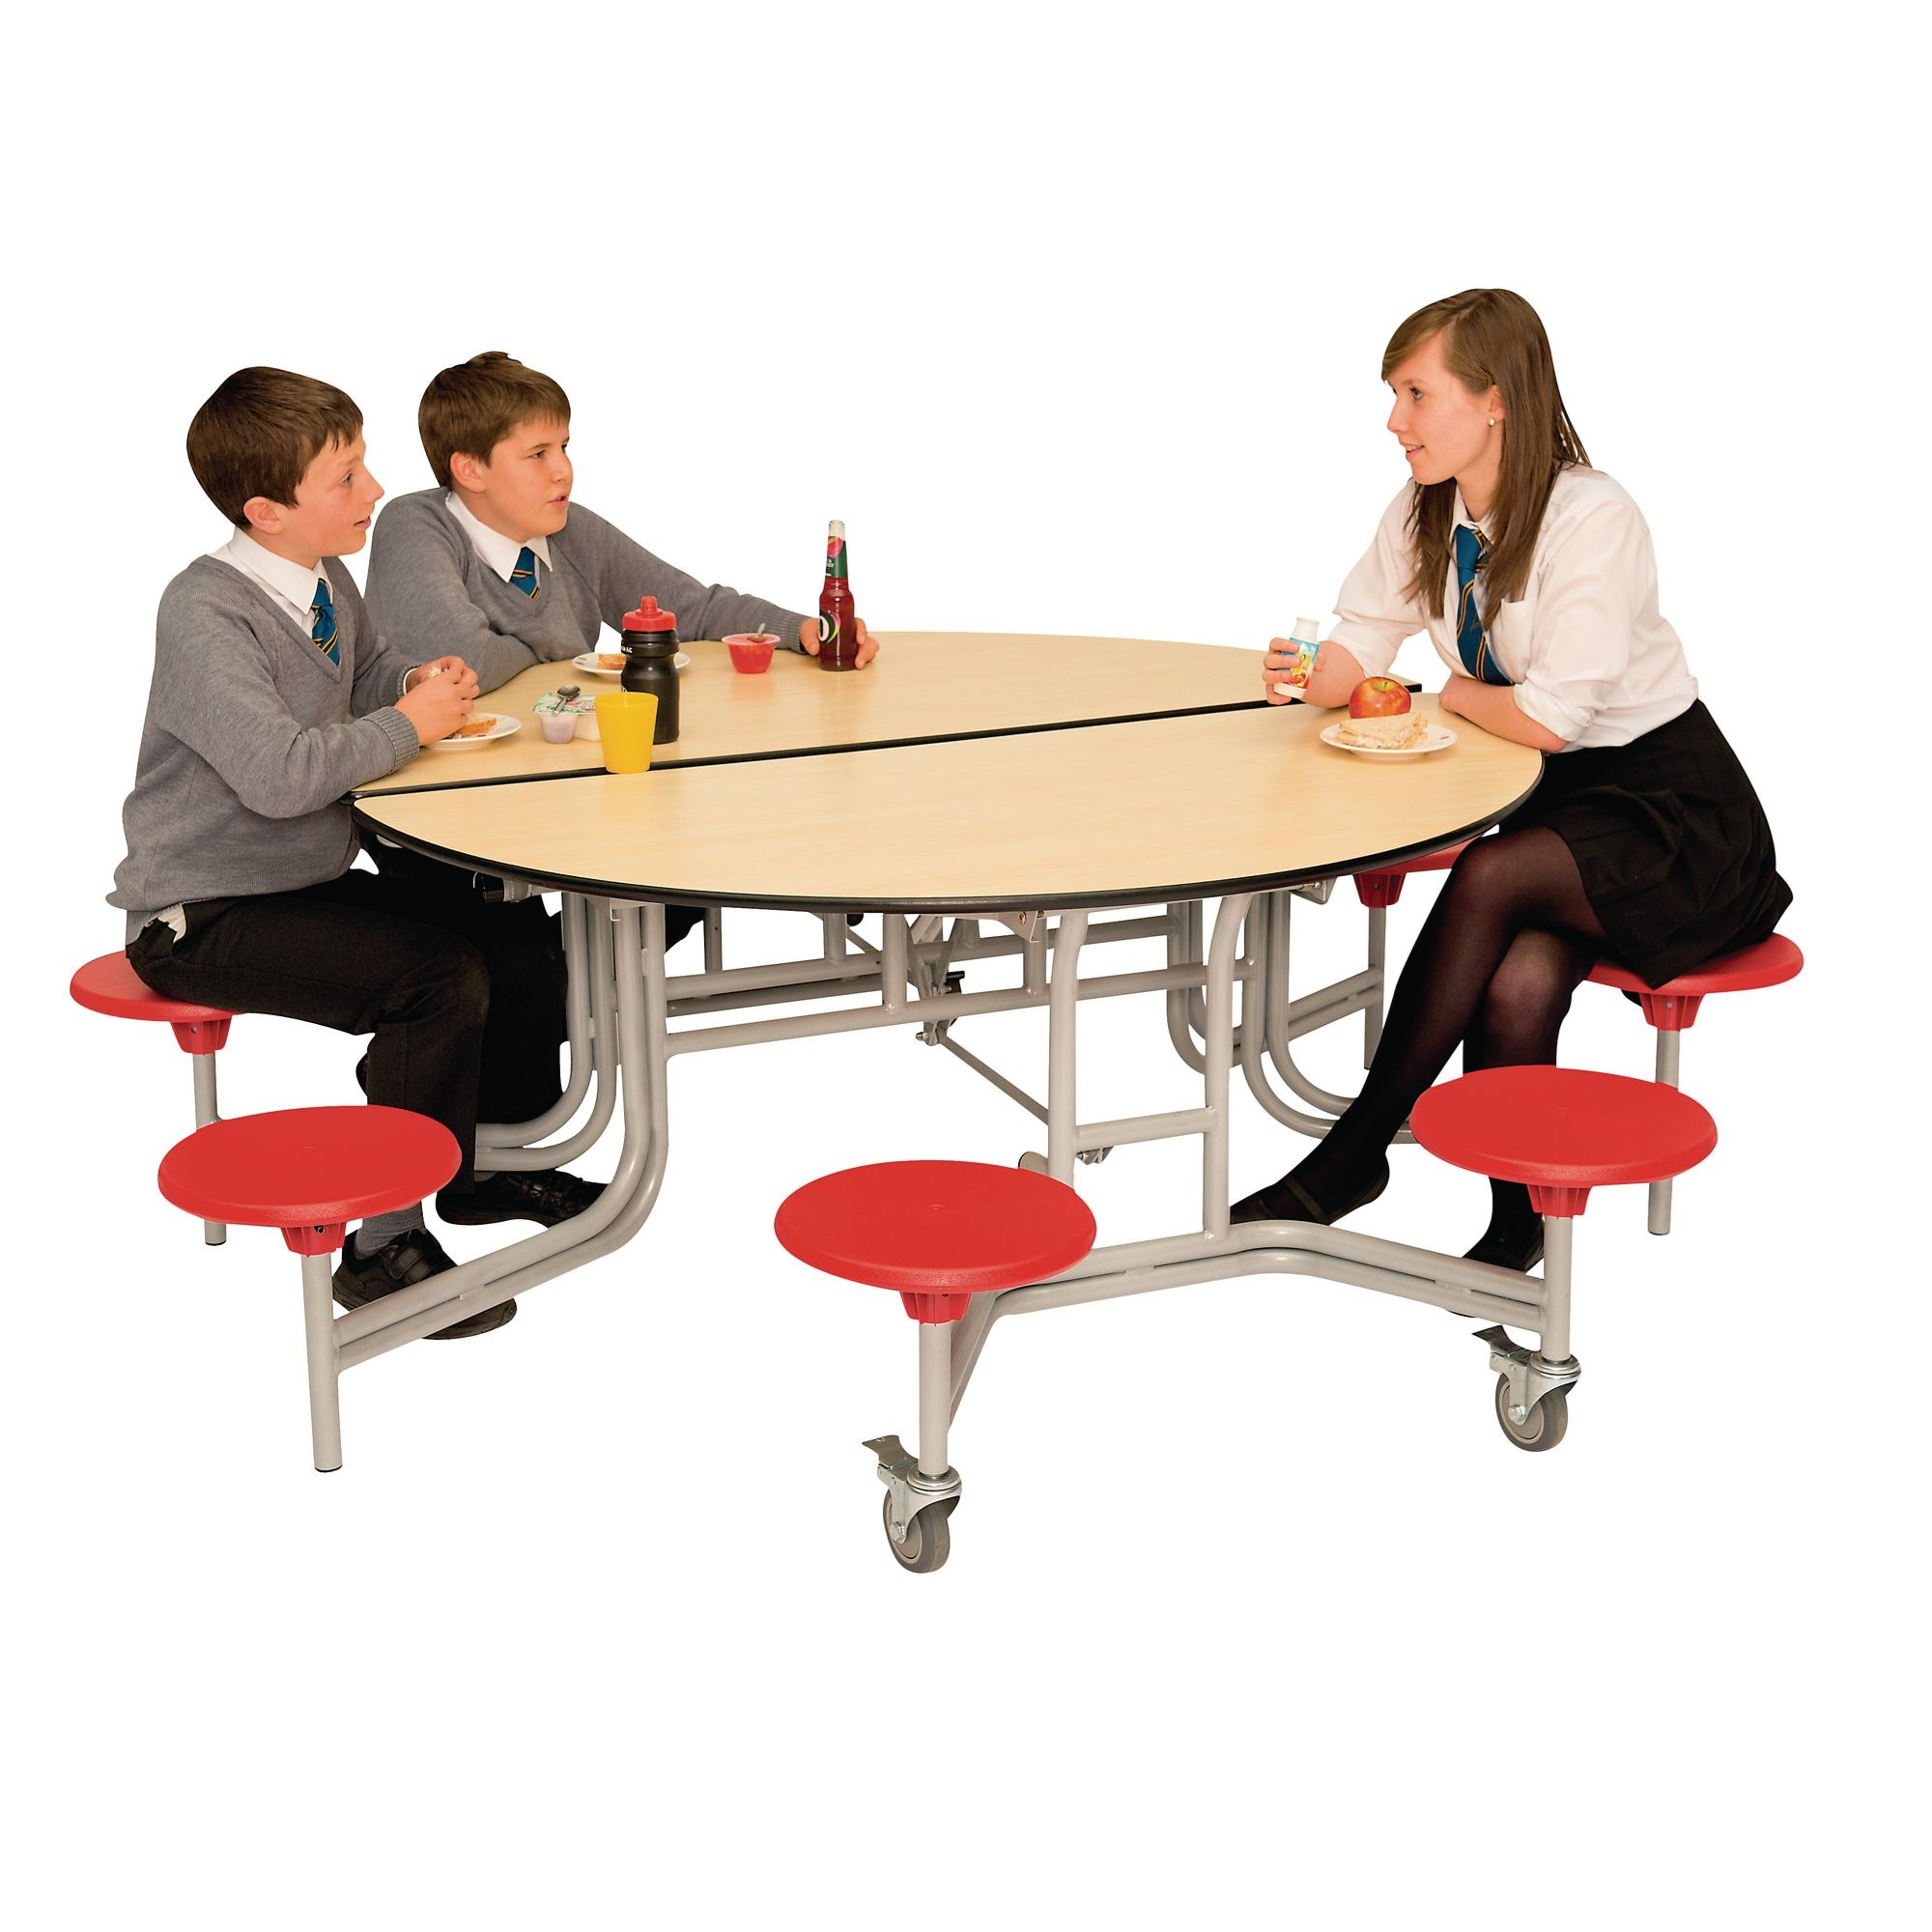 Spaceright Circular 8 Seater Secondary Table Grey Laminated Top Red Seat